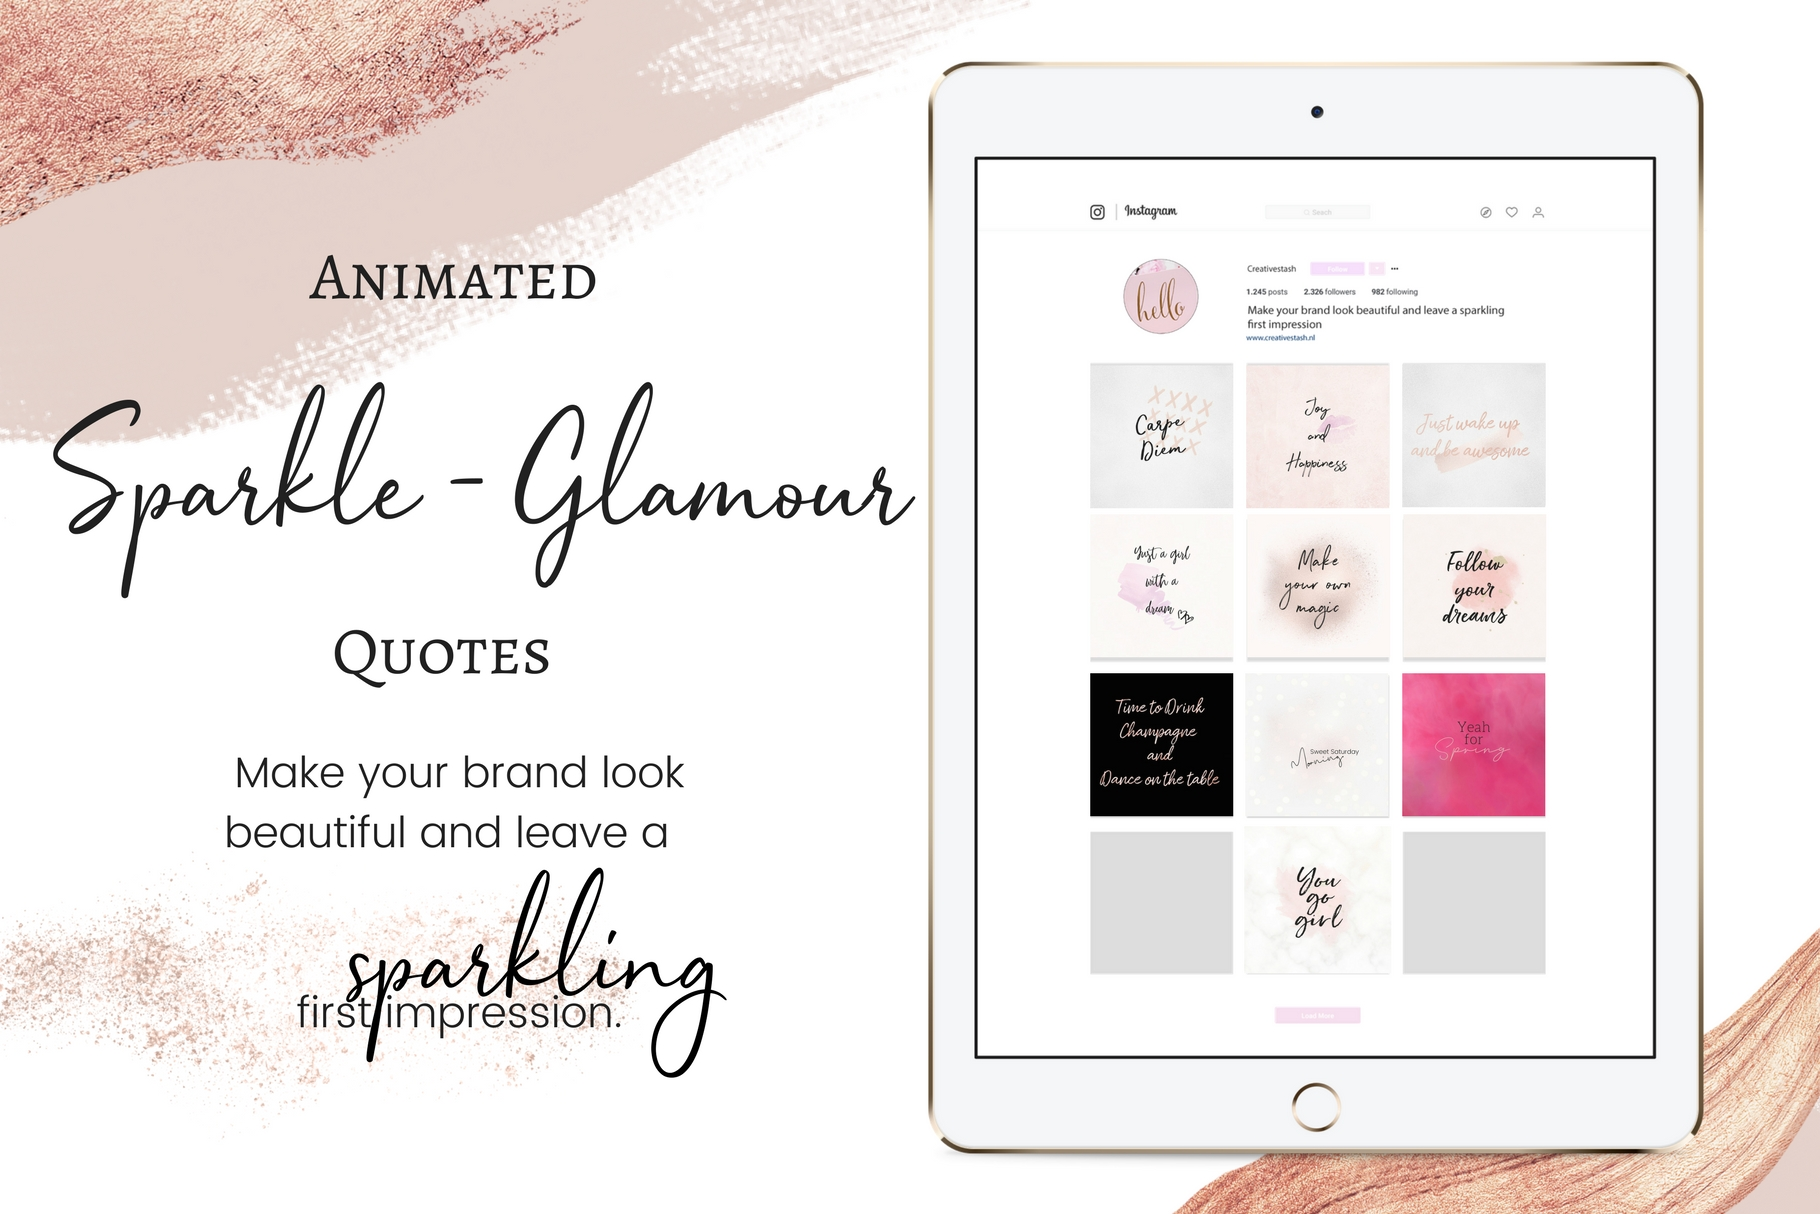 Animated Sparkle - Glamour quotes  example image 1